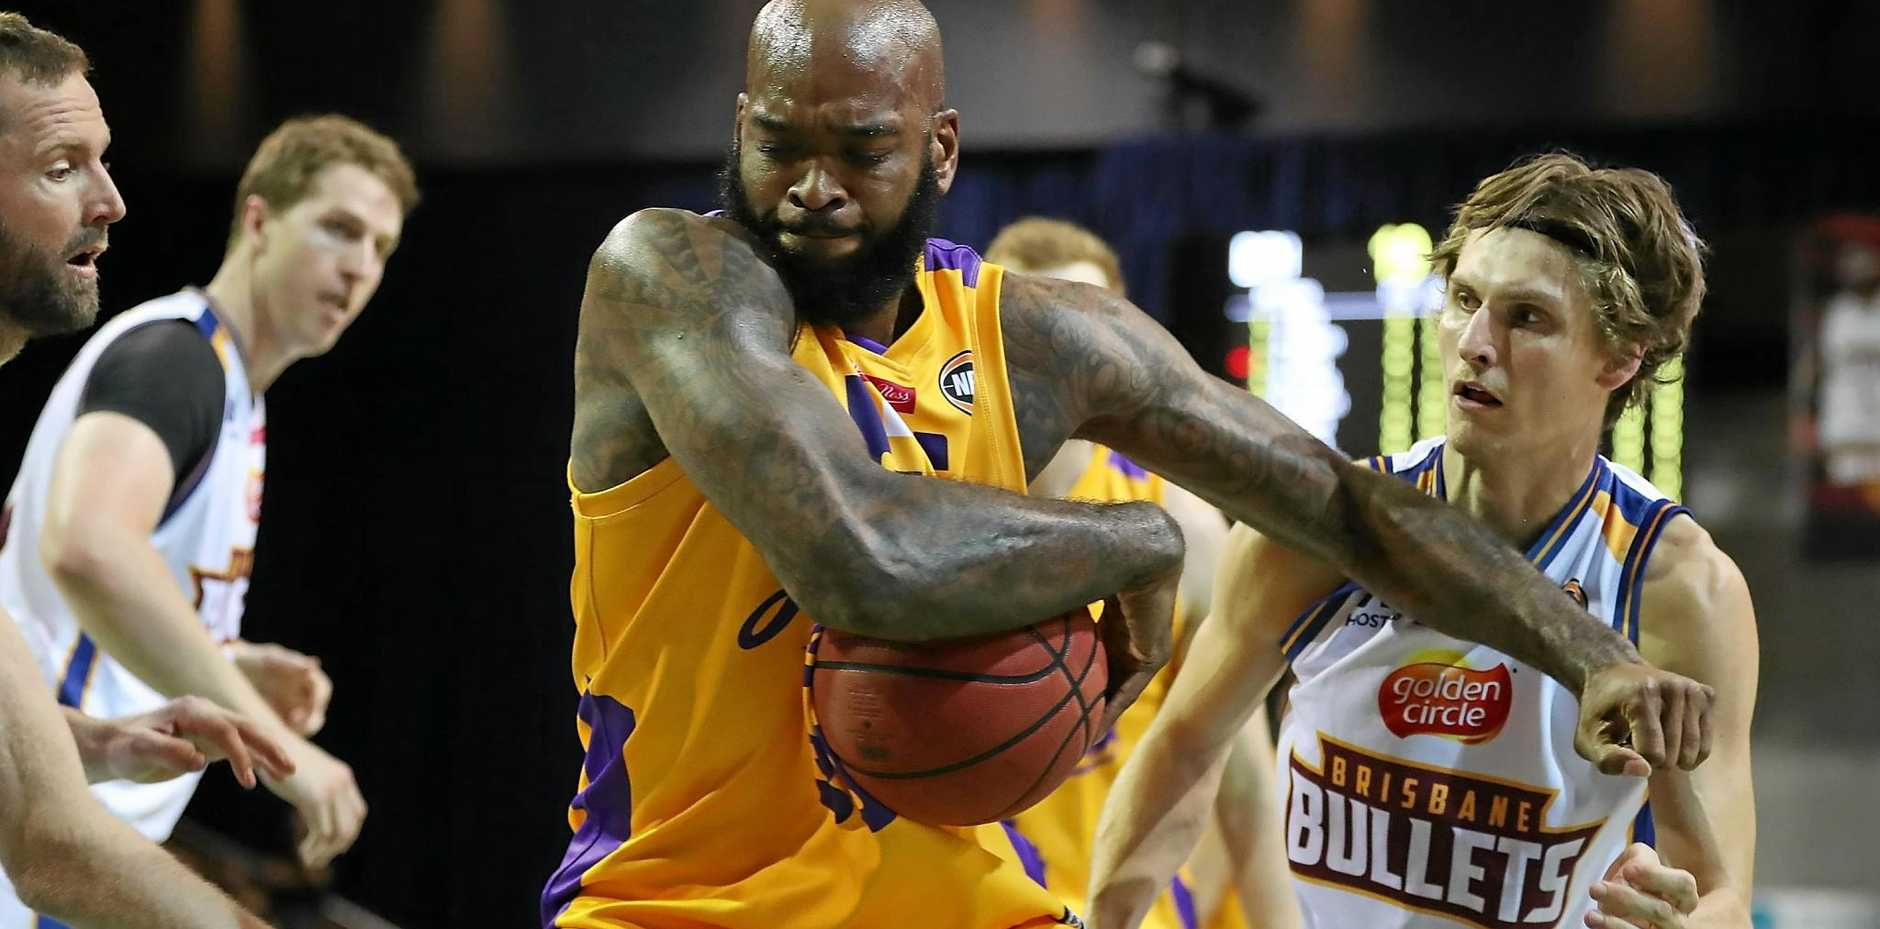 Josh Powell of the Kings takes a rebound against the Bullets at the Brisbane Convention and Exhibition Centre.